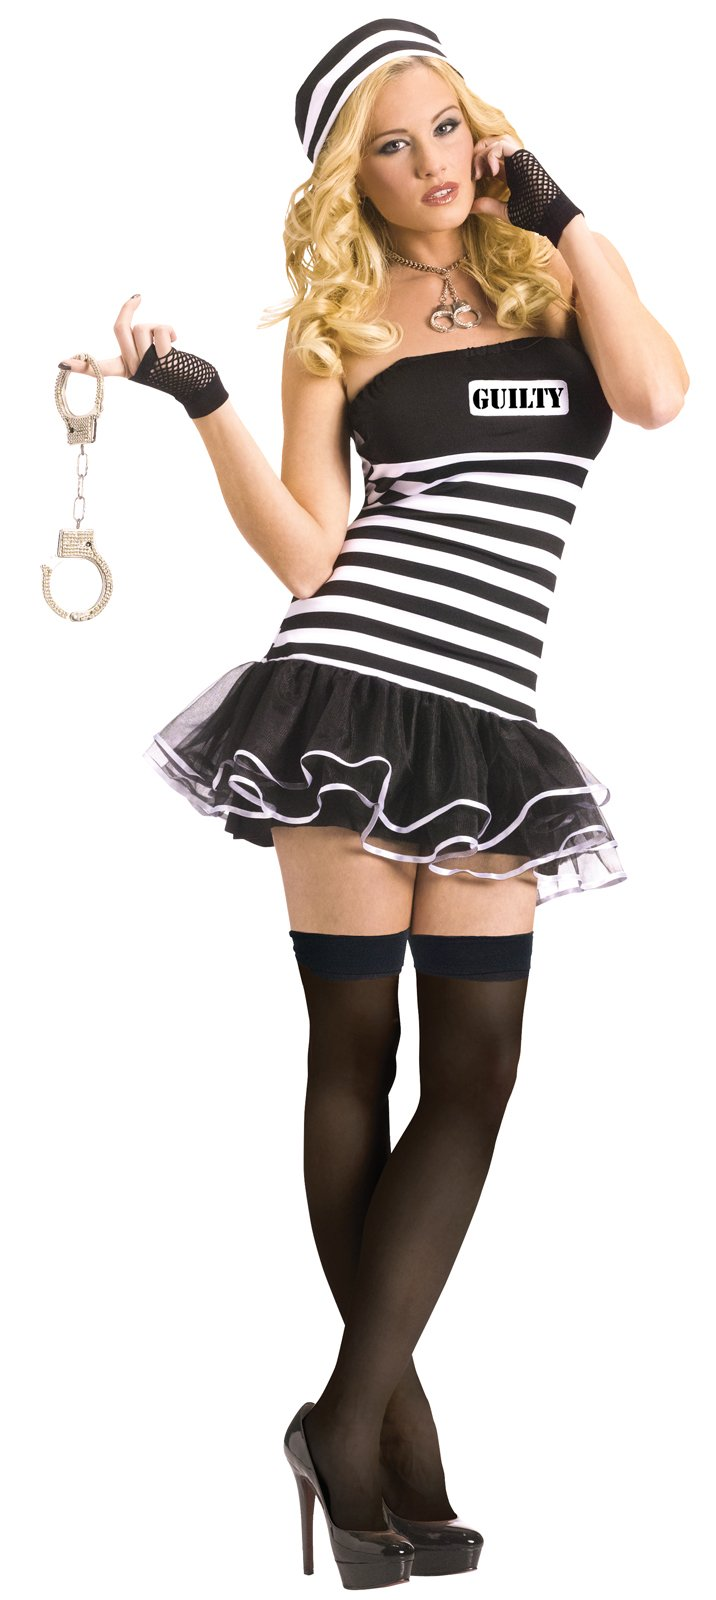 Guilty Conscience Adult Costume